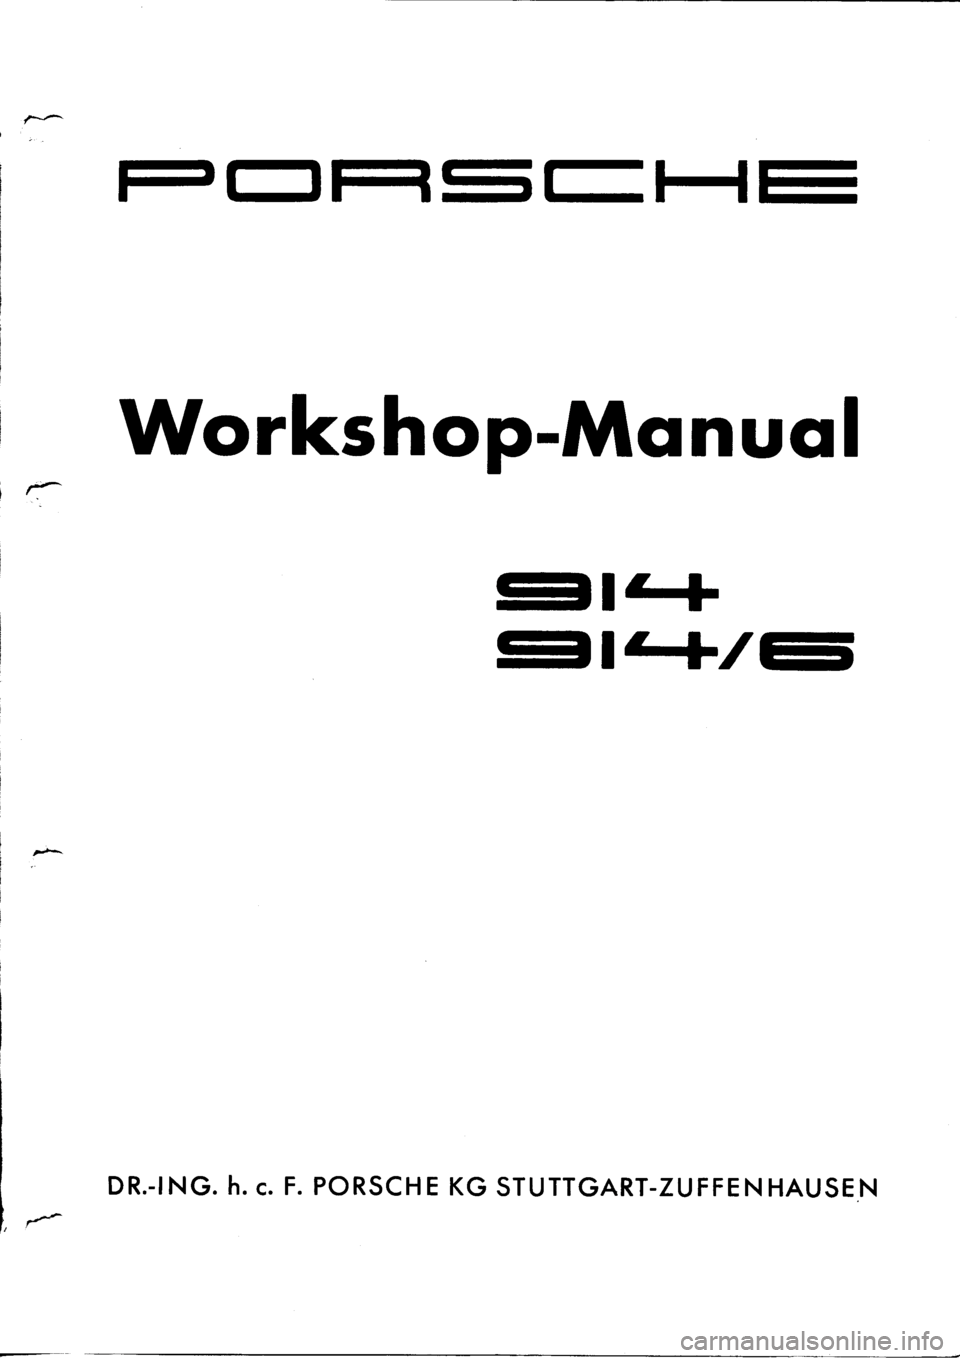 PORSCHE 914 1971 1.G Engine 1 Workshop Manual